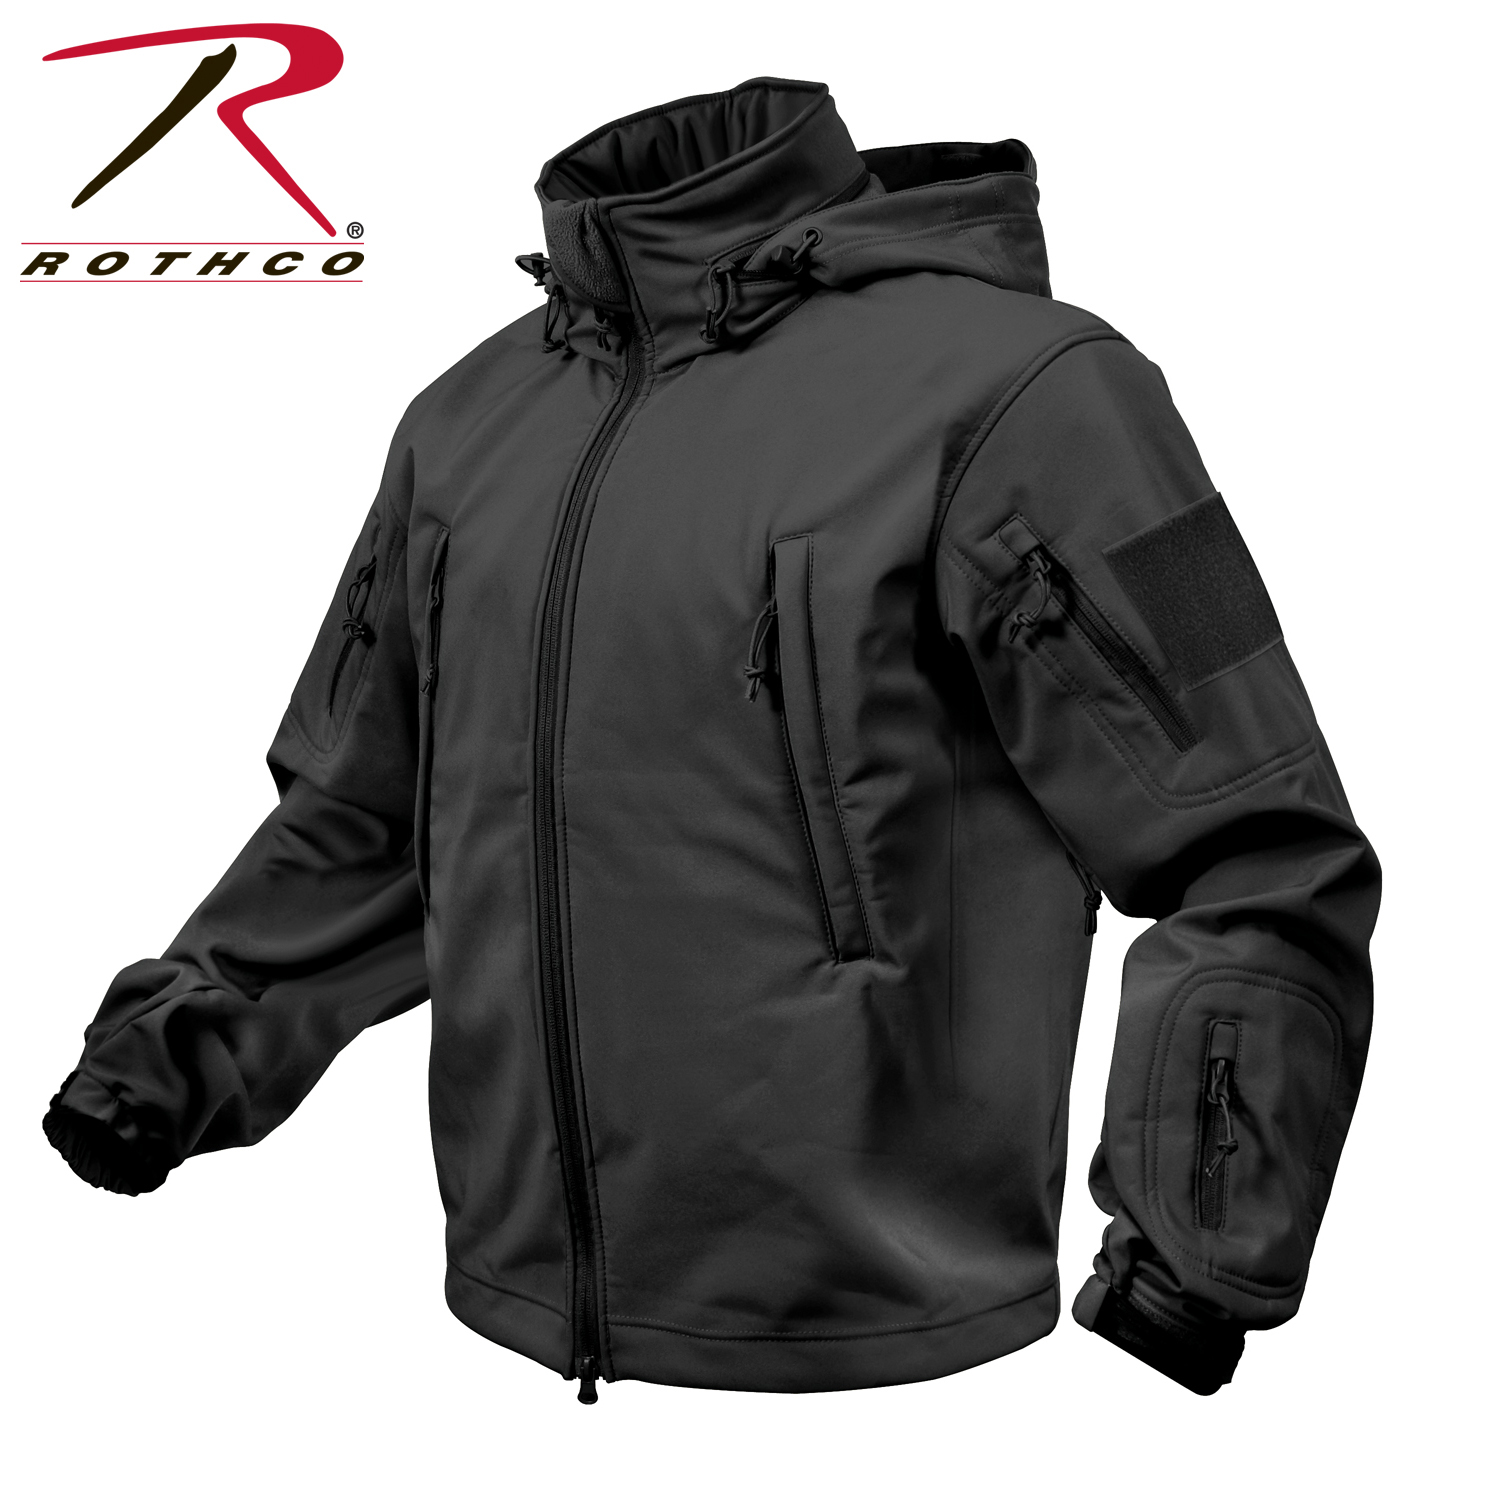 51b70d5d599 Rothco Special Ops Tactical Soft Shell Jacket